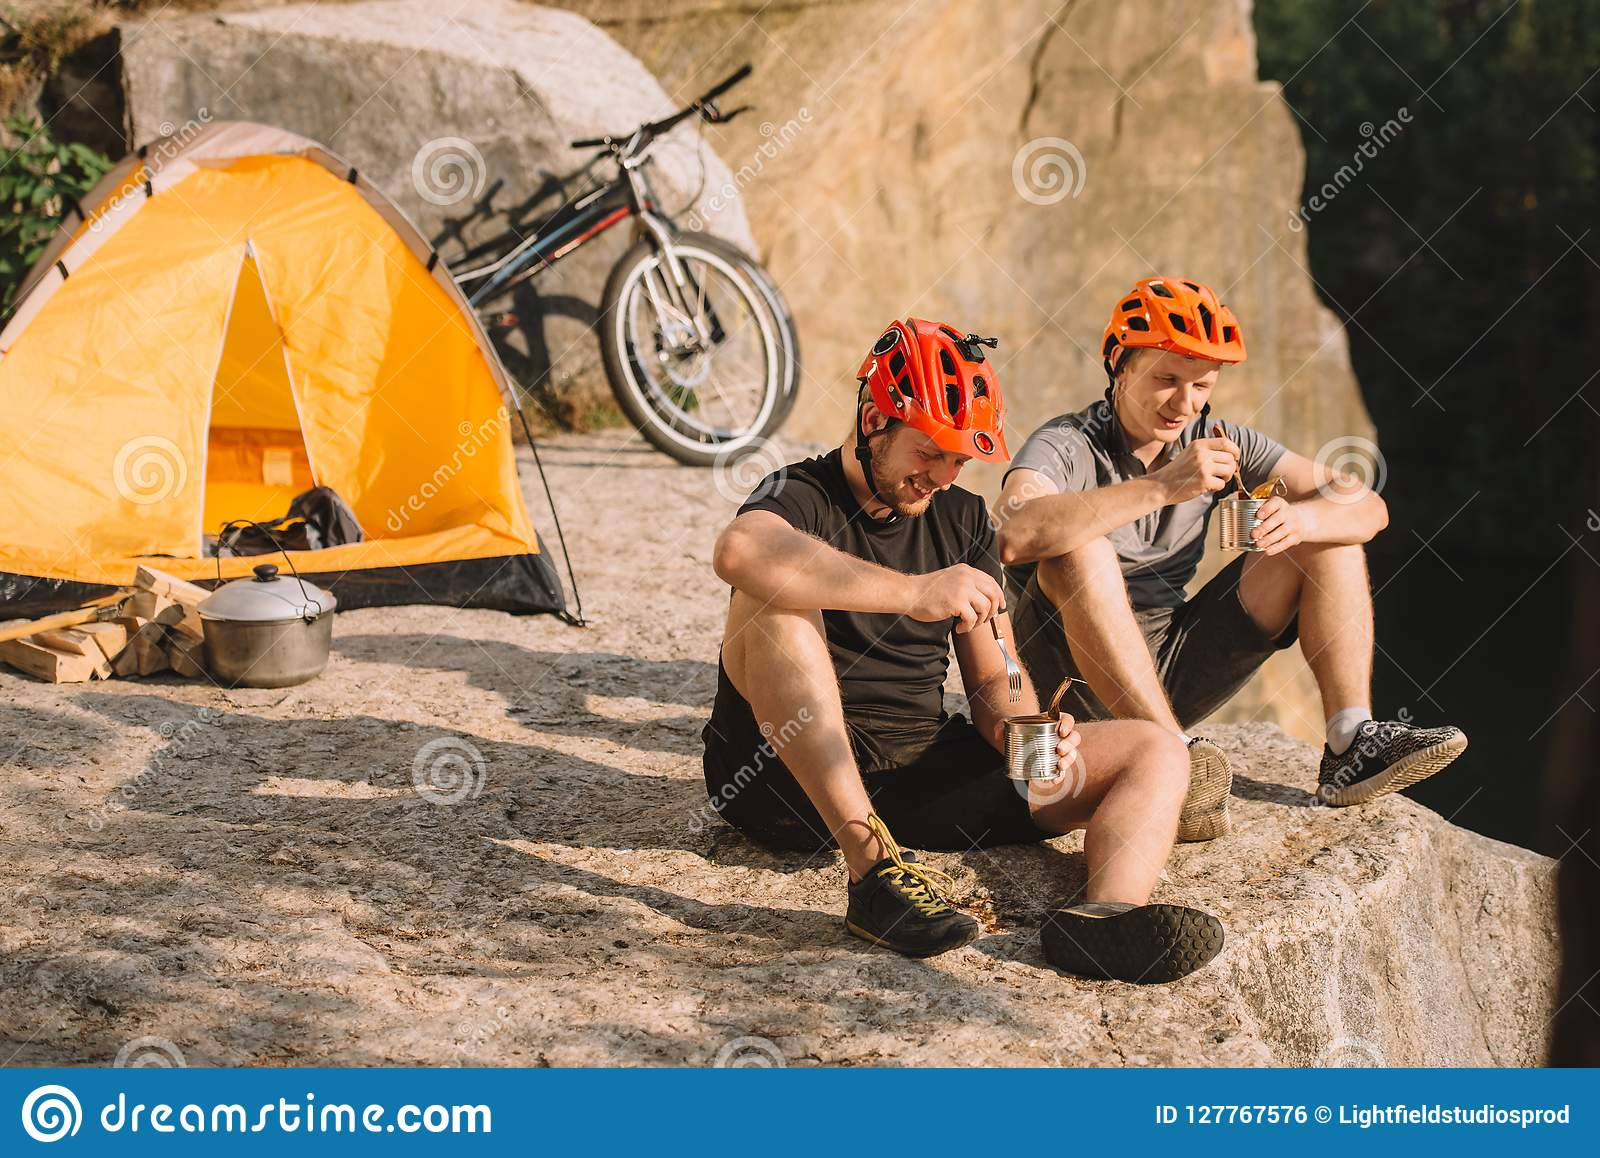 happy trial bikers eating canned food in camping